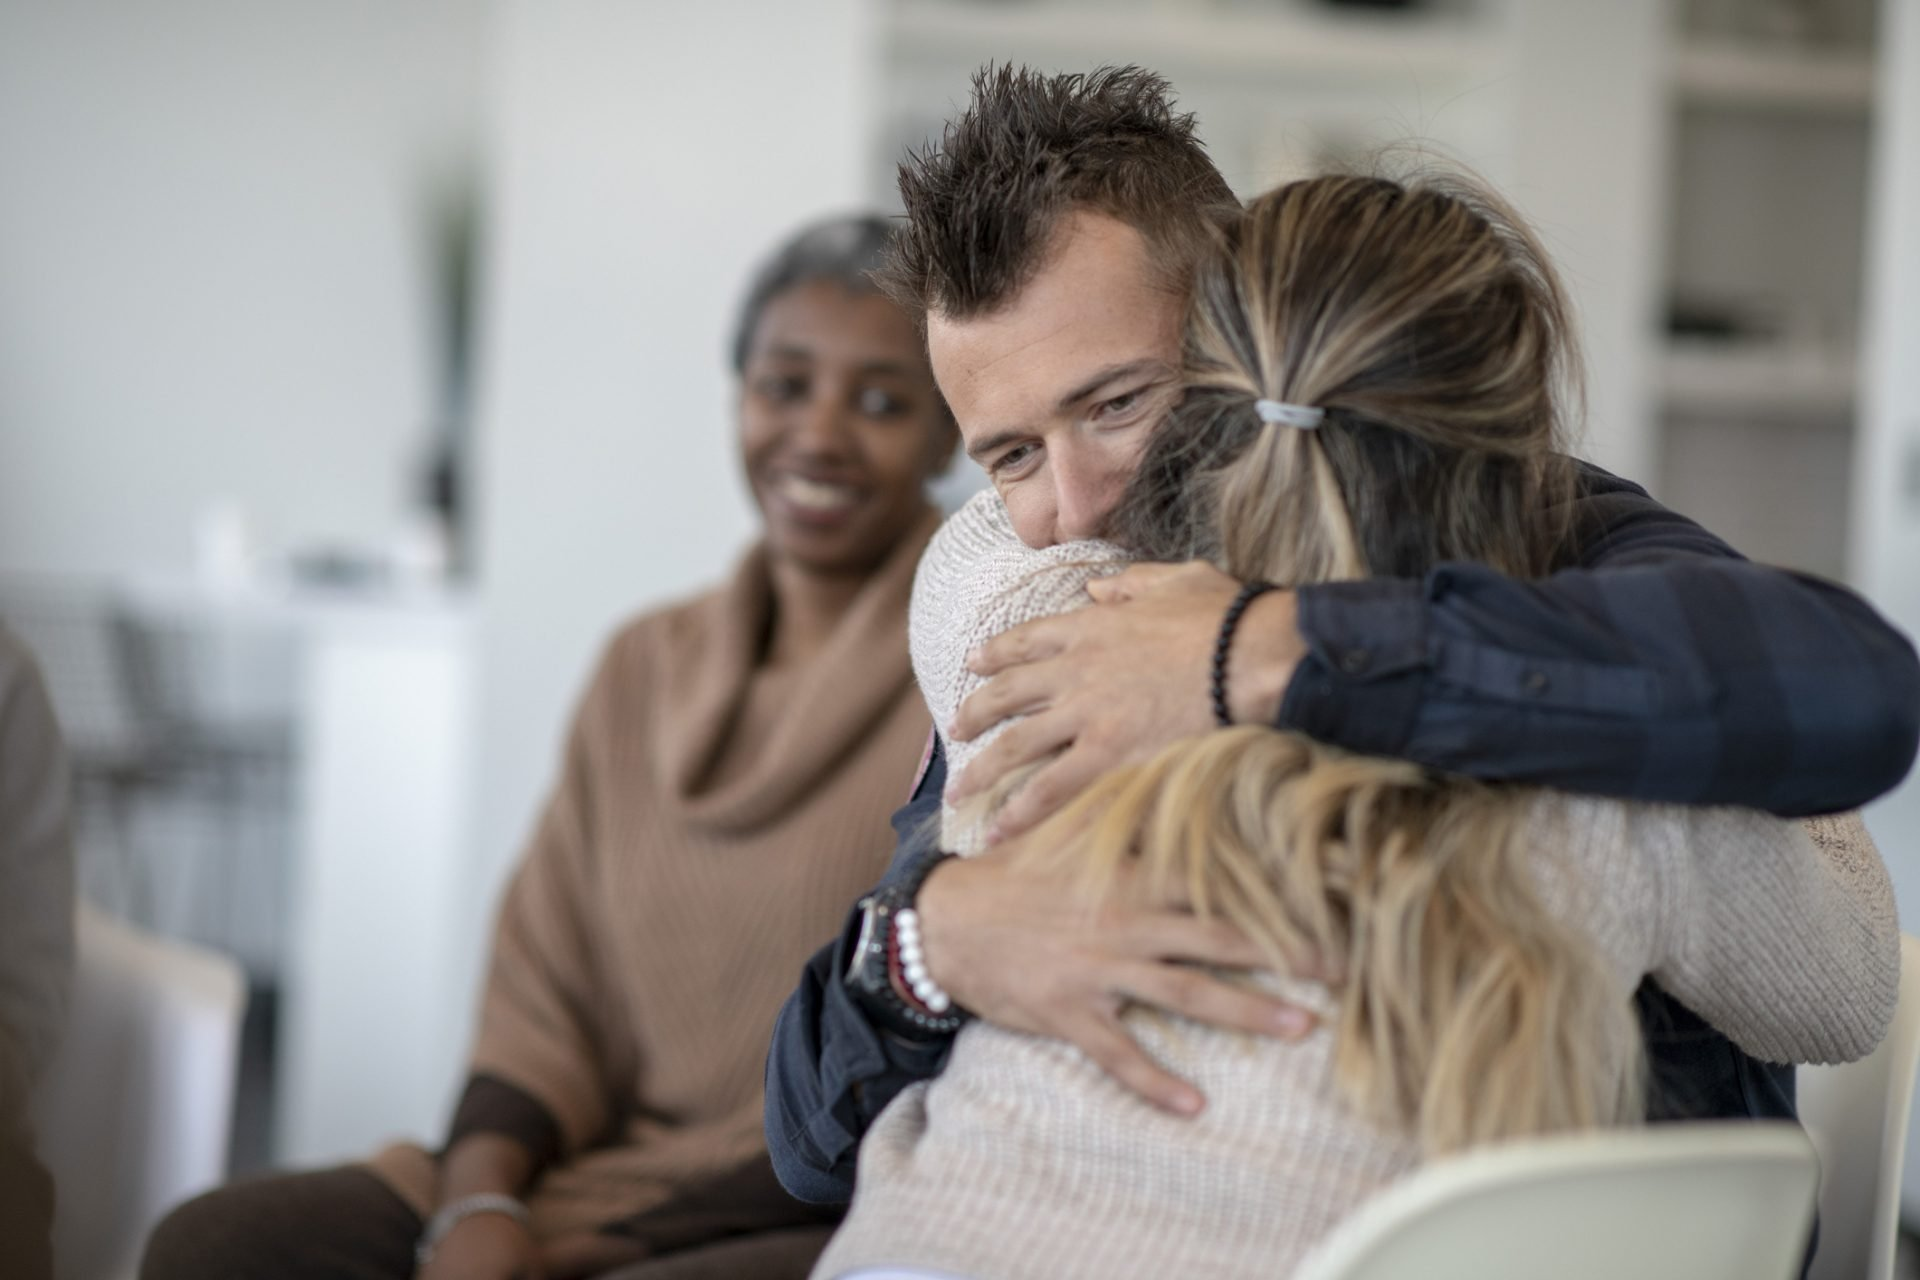 Man Hugging Woman in Therapy